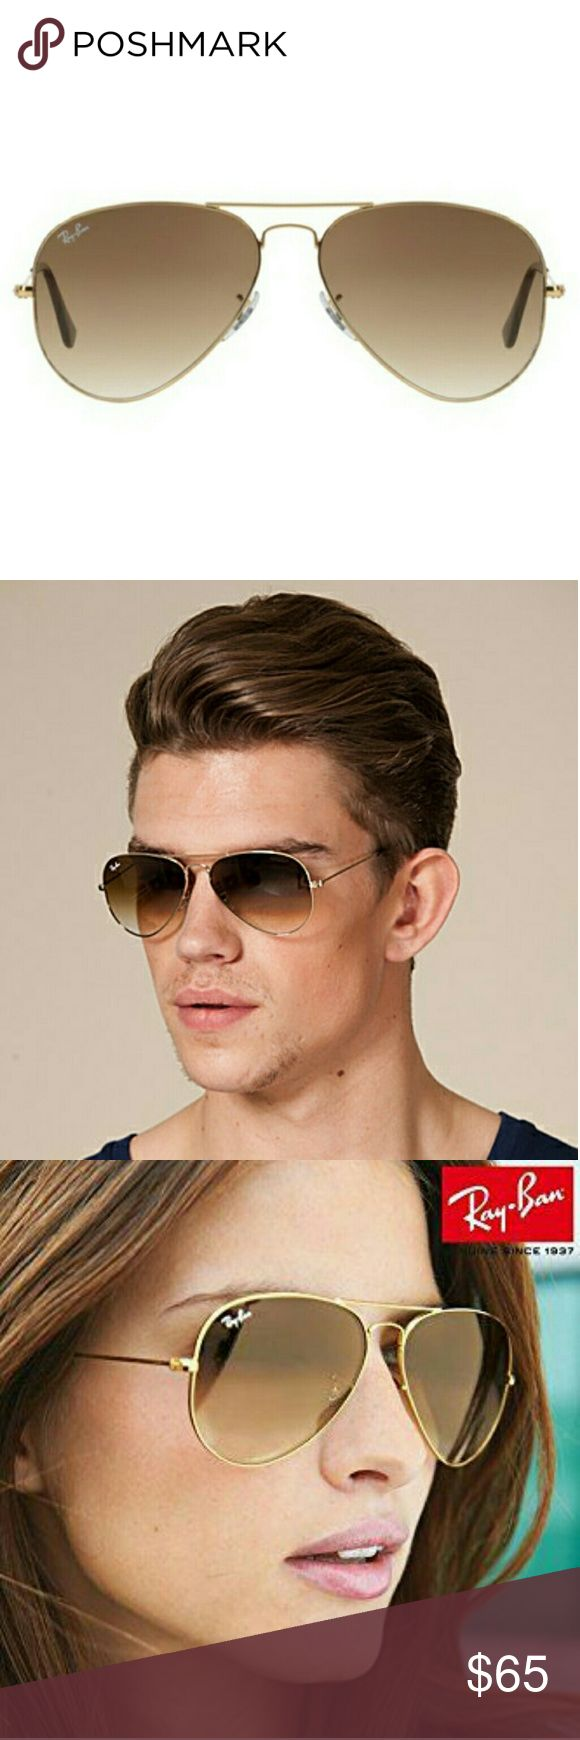 Mens sunglasses large head - Ray Ban Brown Gradient Sunglasses Gold Metal Frame Boutique